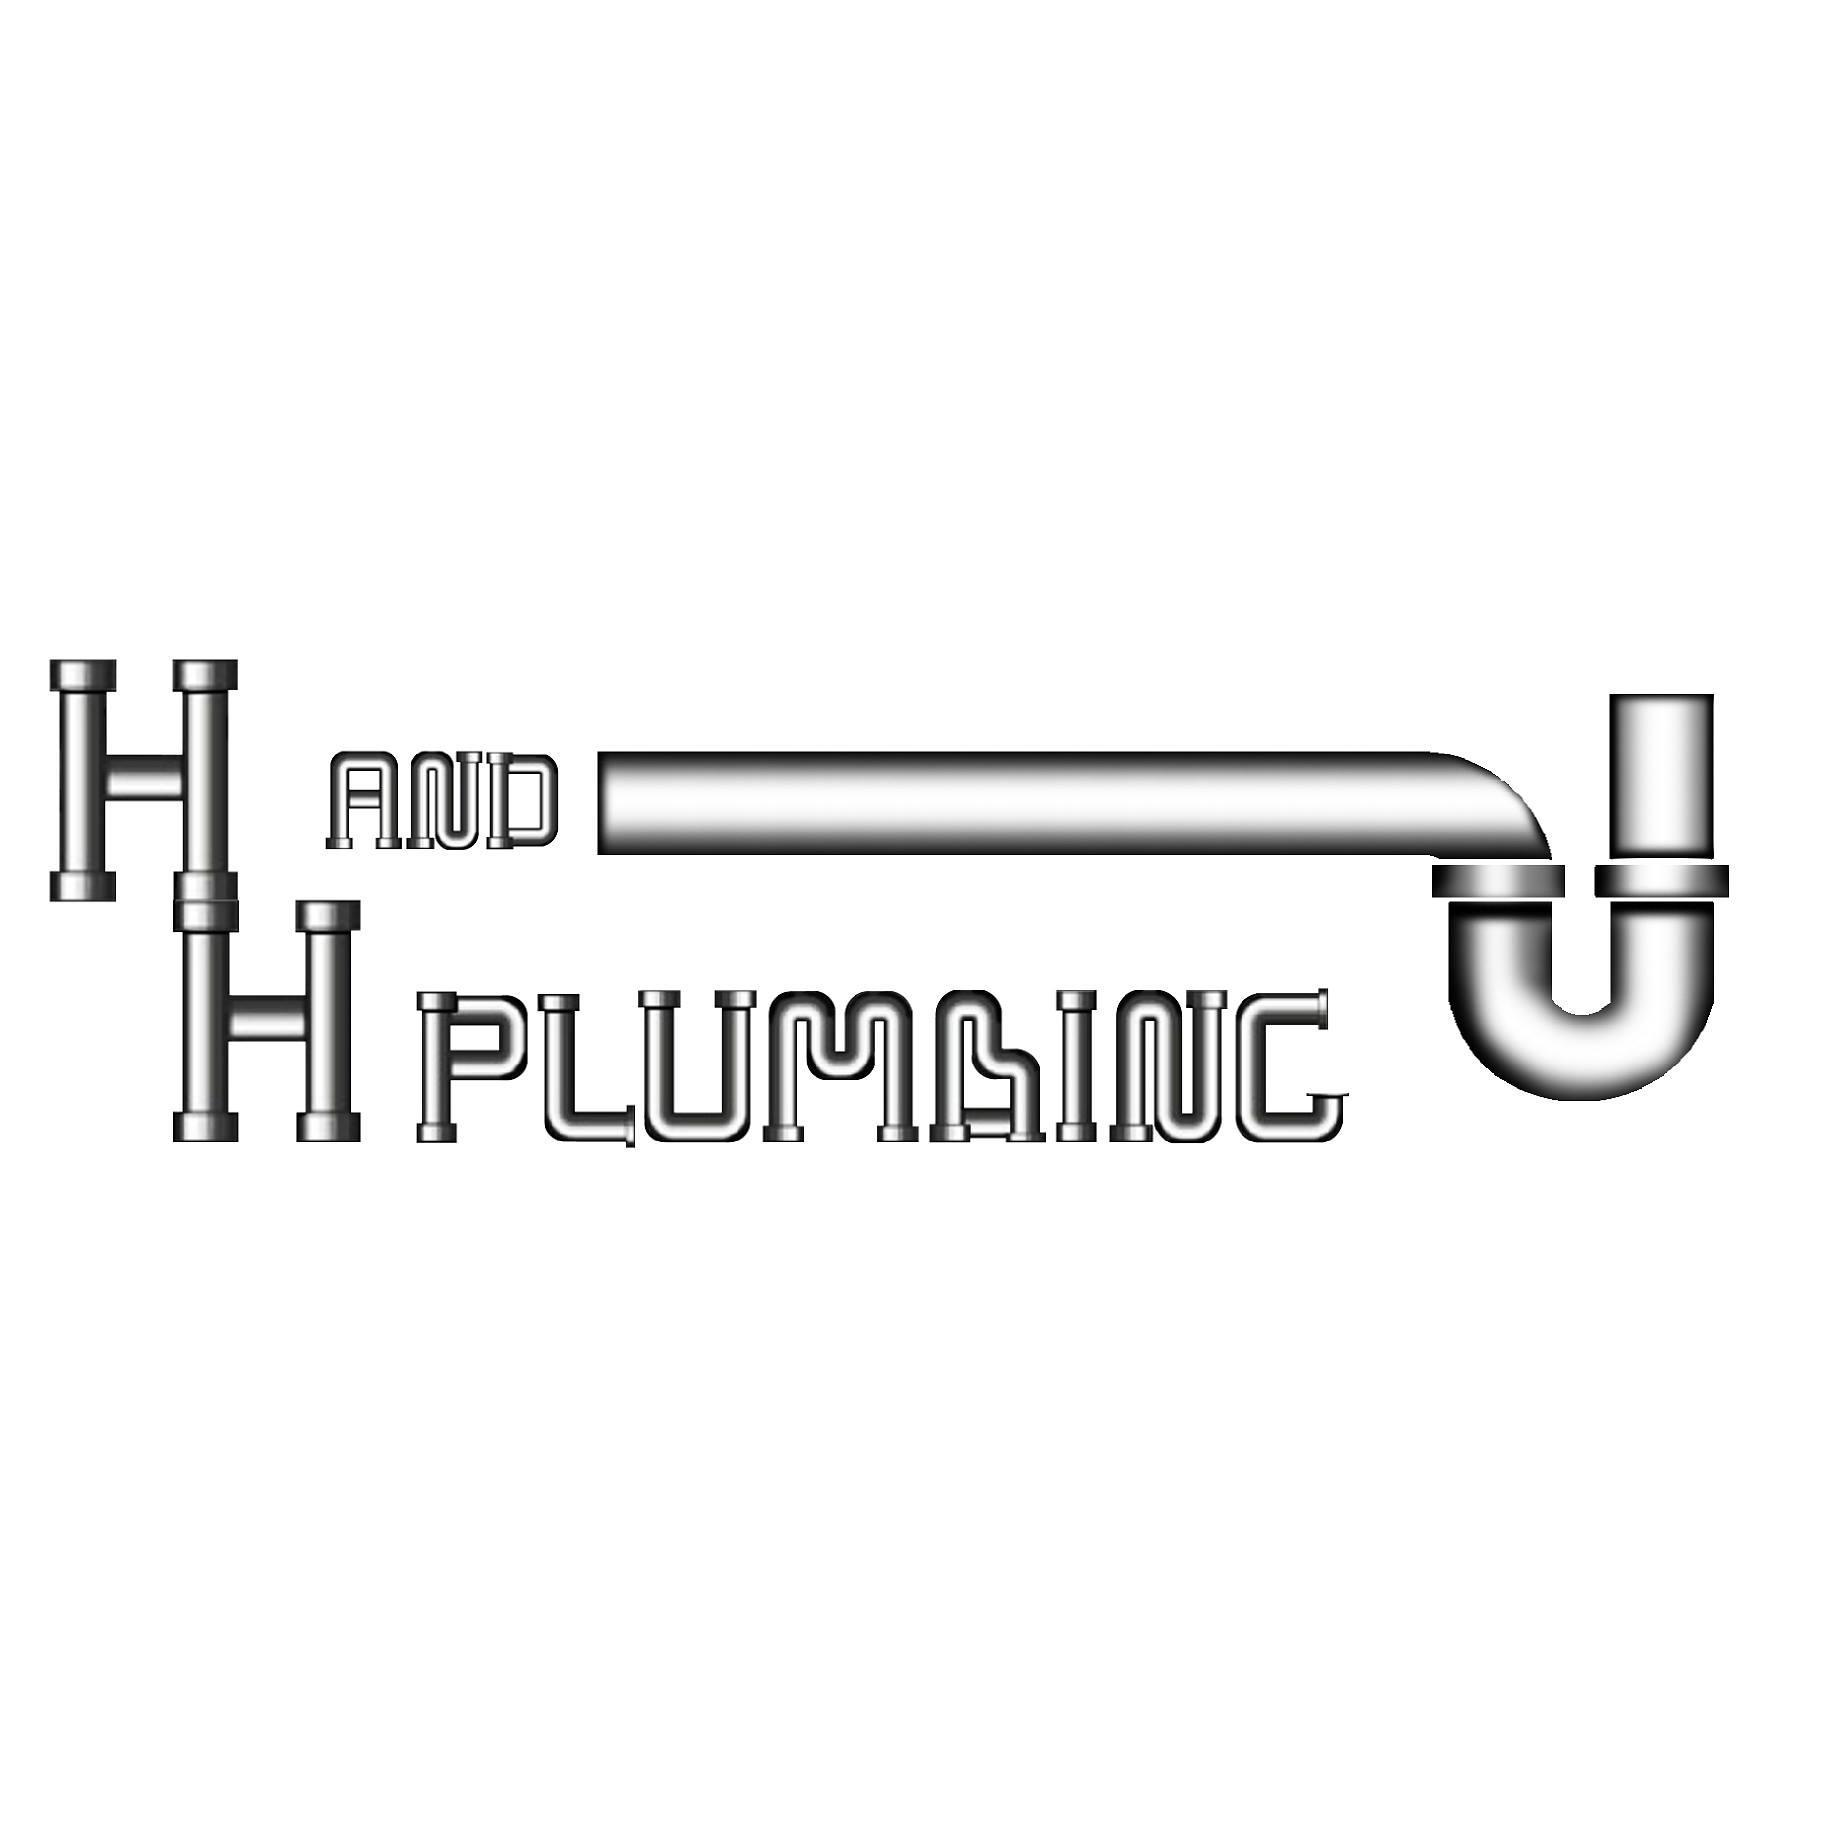 H and H Plumbing